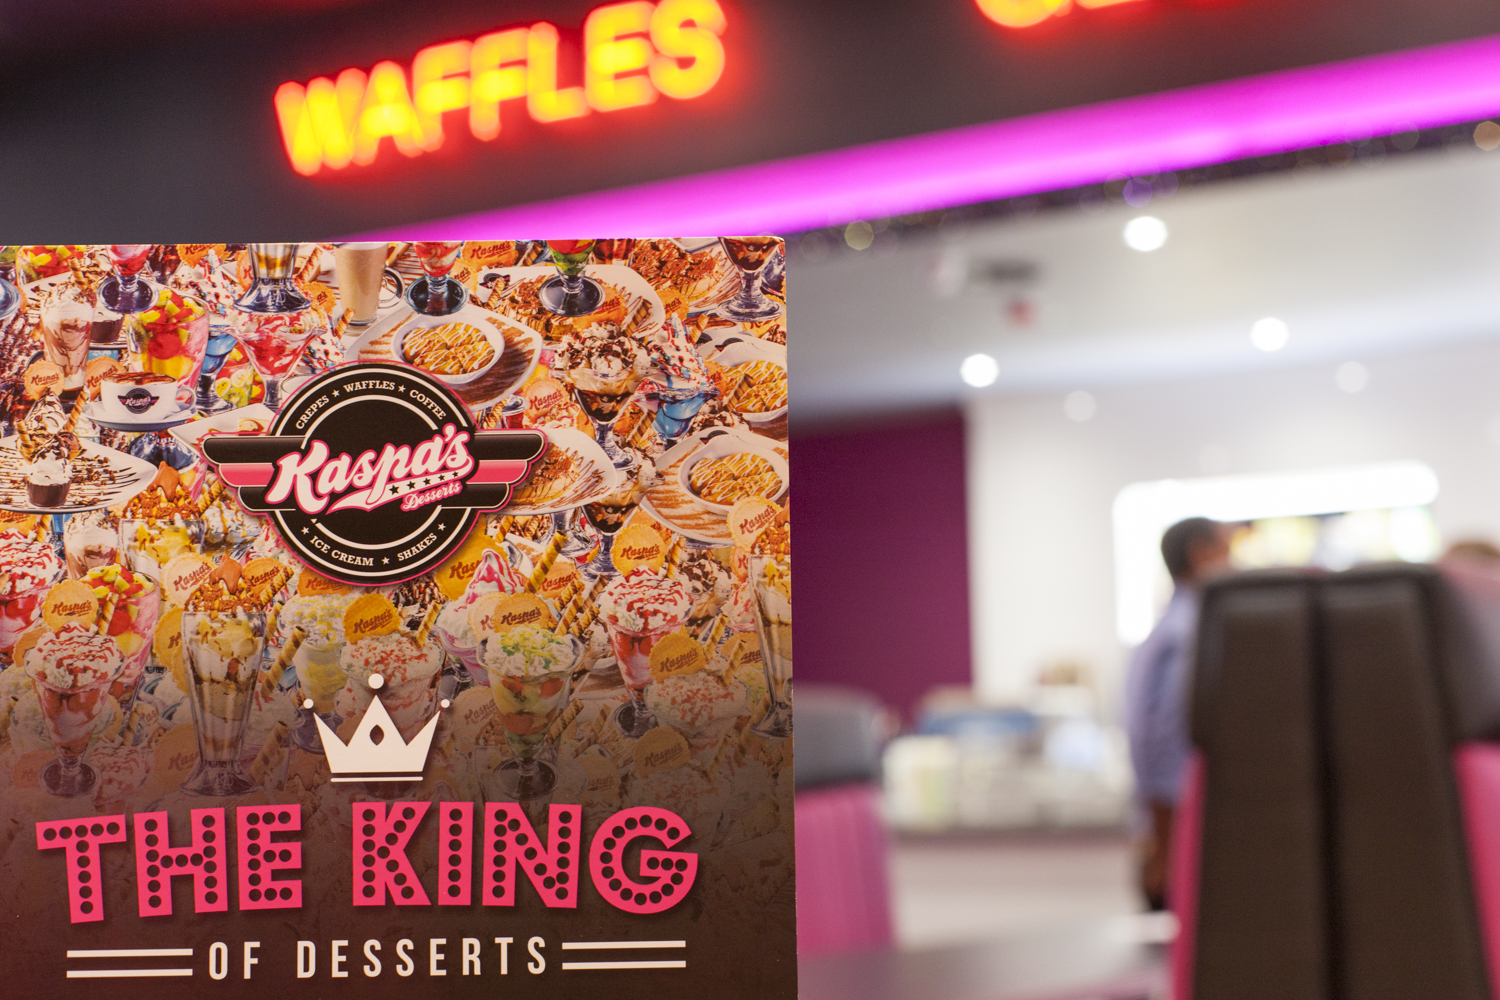 kaspas dessert menu the king of desserts with neon light spelling waffles